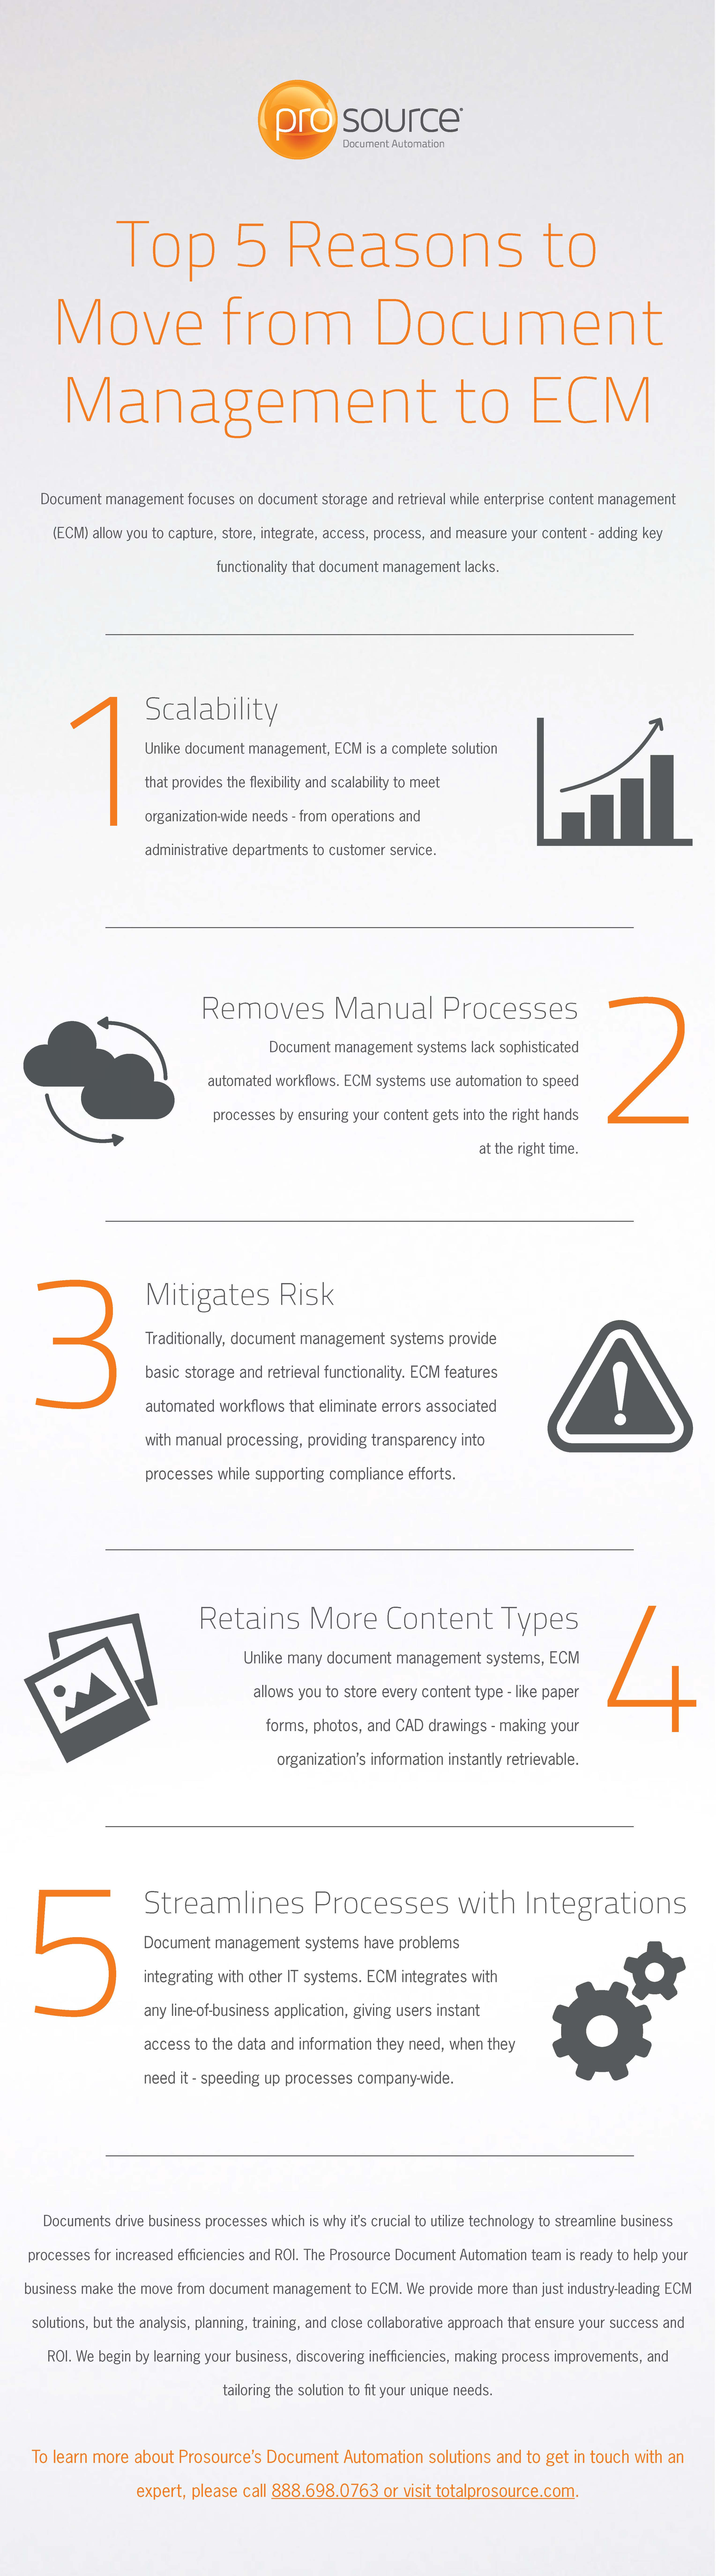 Top 5 Reasons to Move from Document Management to ECM Infographic.jpg